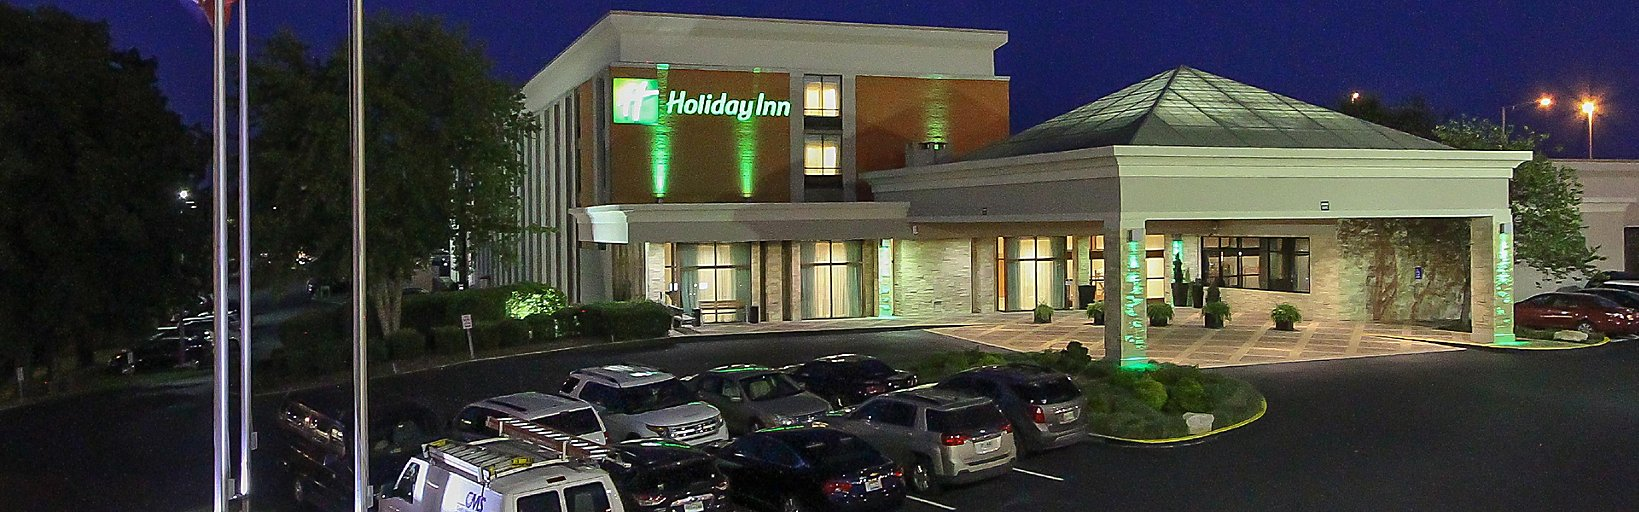 Hotels In Knoxville Tn Holiday Inn Knoxville West Cedar Bluff Rd